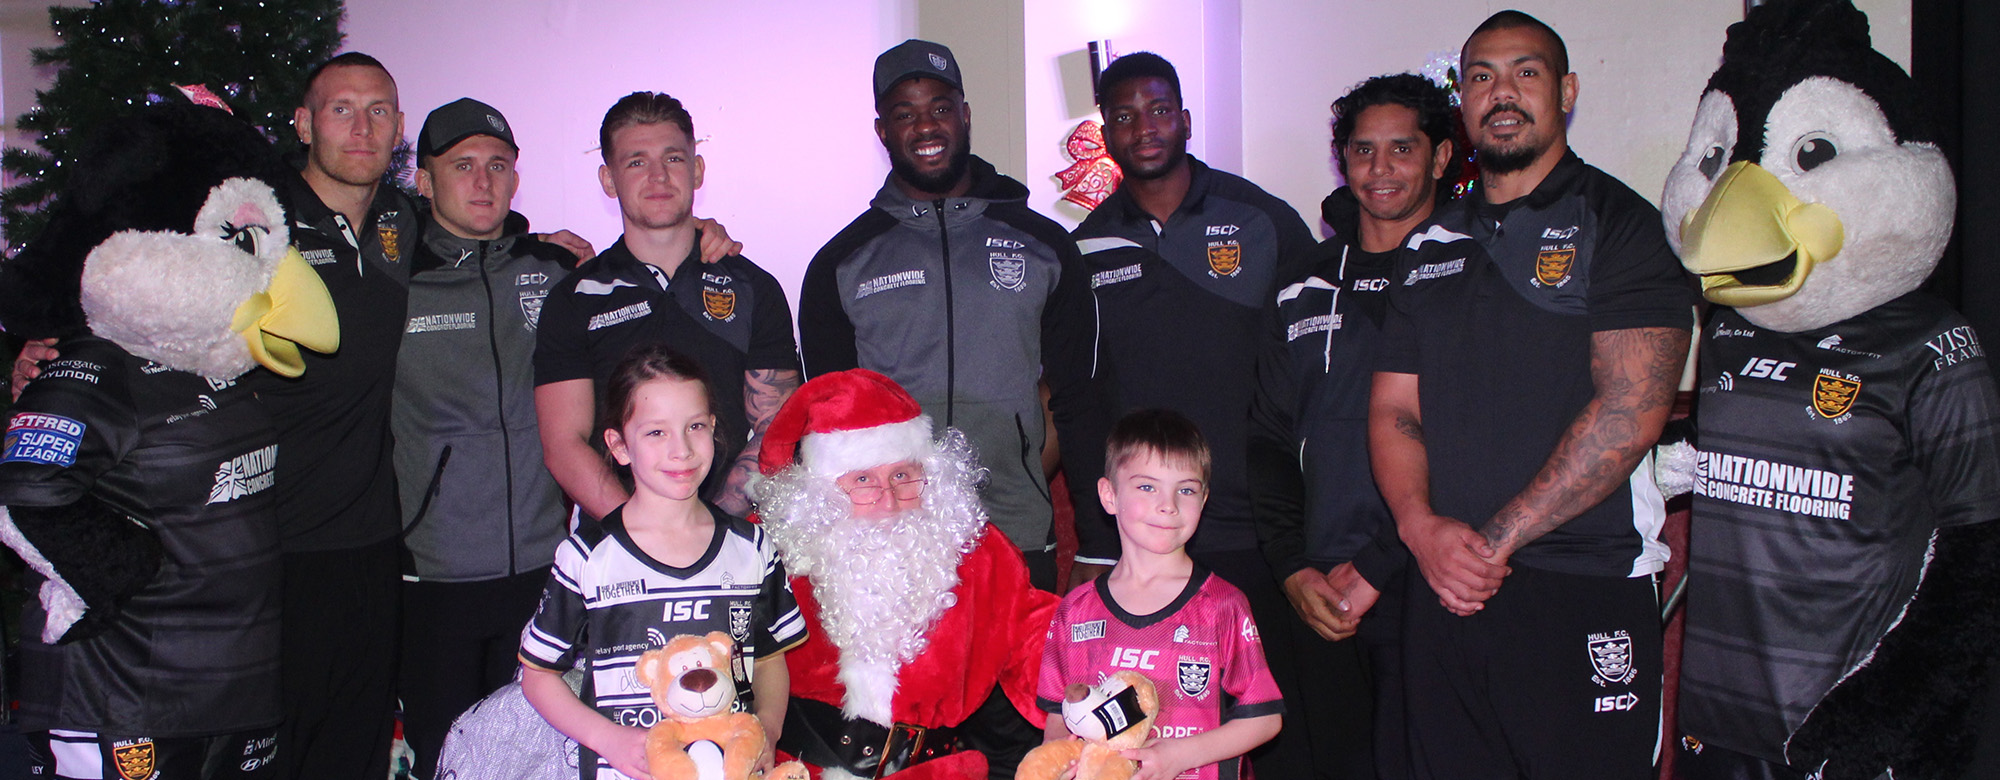 Meet The Players at 2019 Junior Christmas Party!